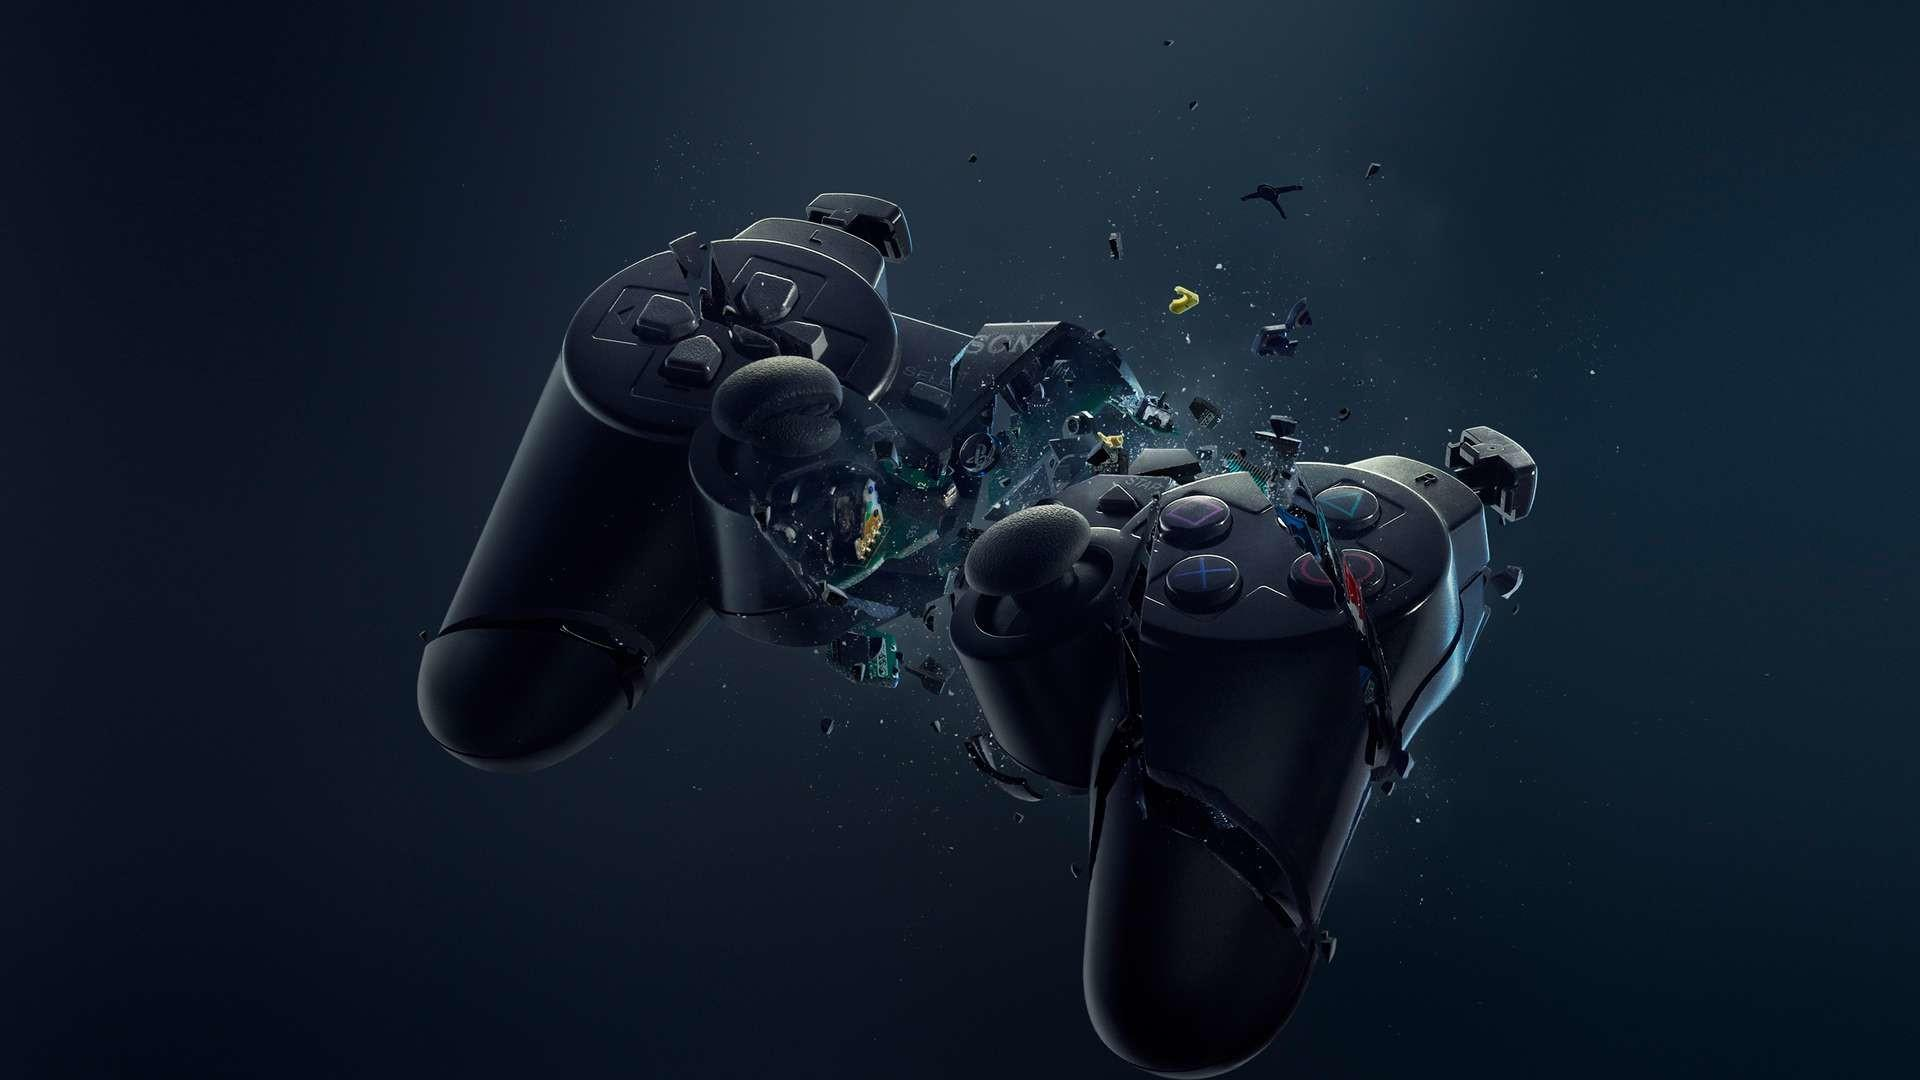 58+ Ps3 Controller Wallpapers